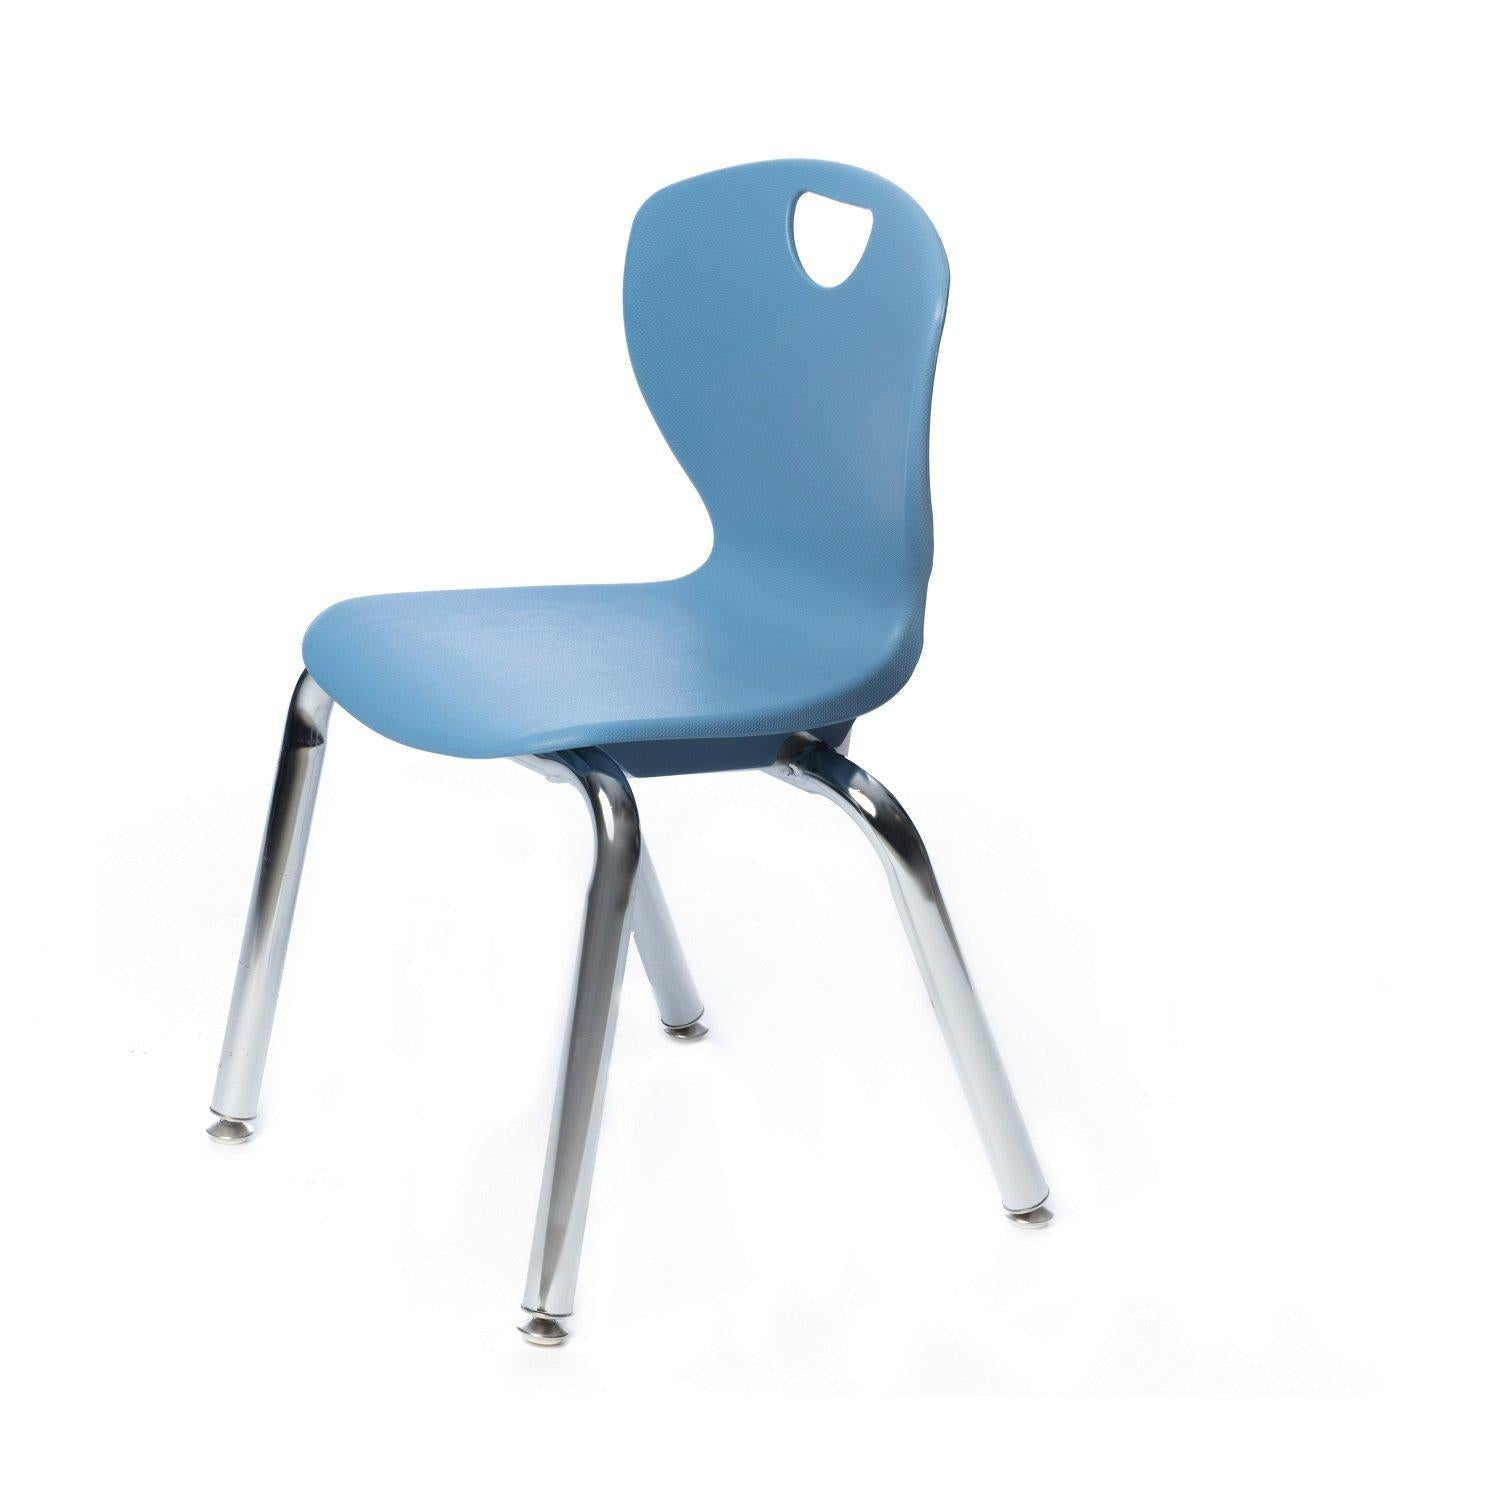 "Ovation Contemporary Classroom Stack Chair, 14"" Seat Height"